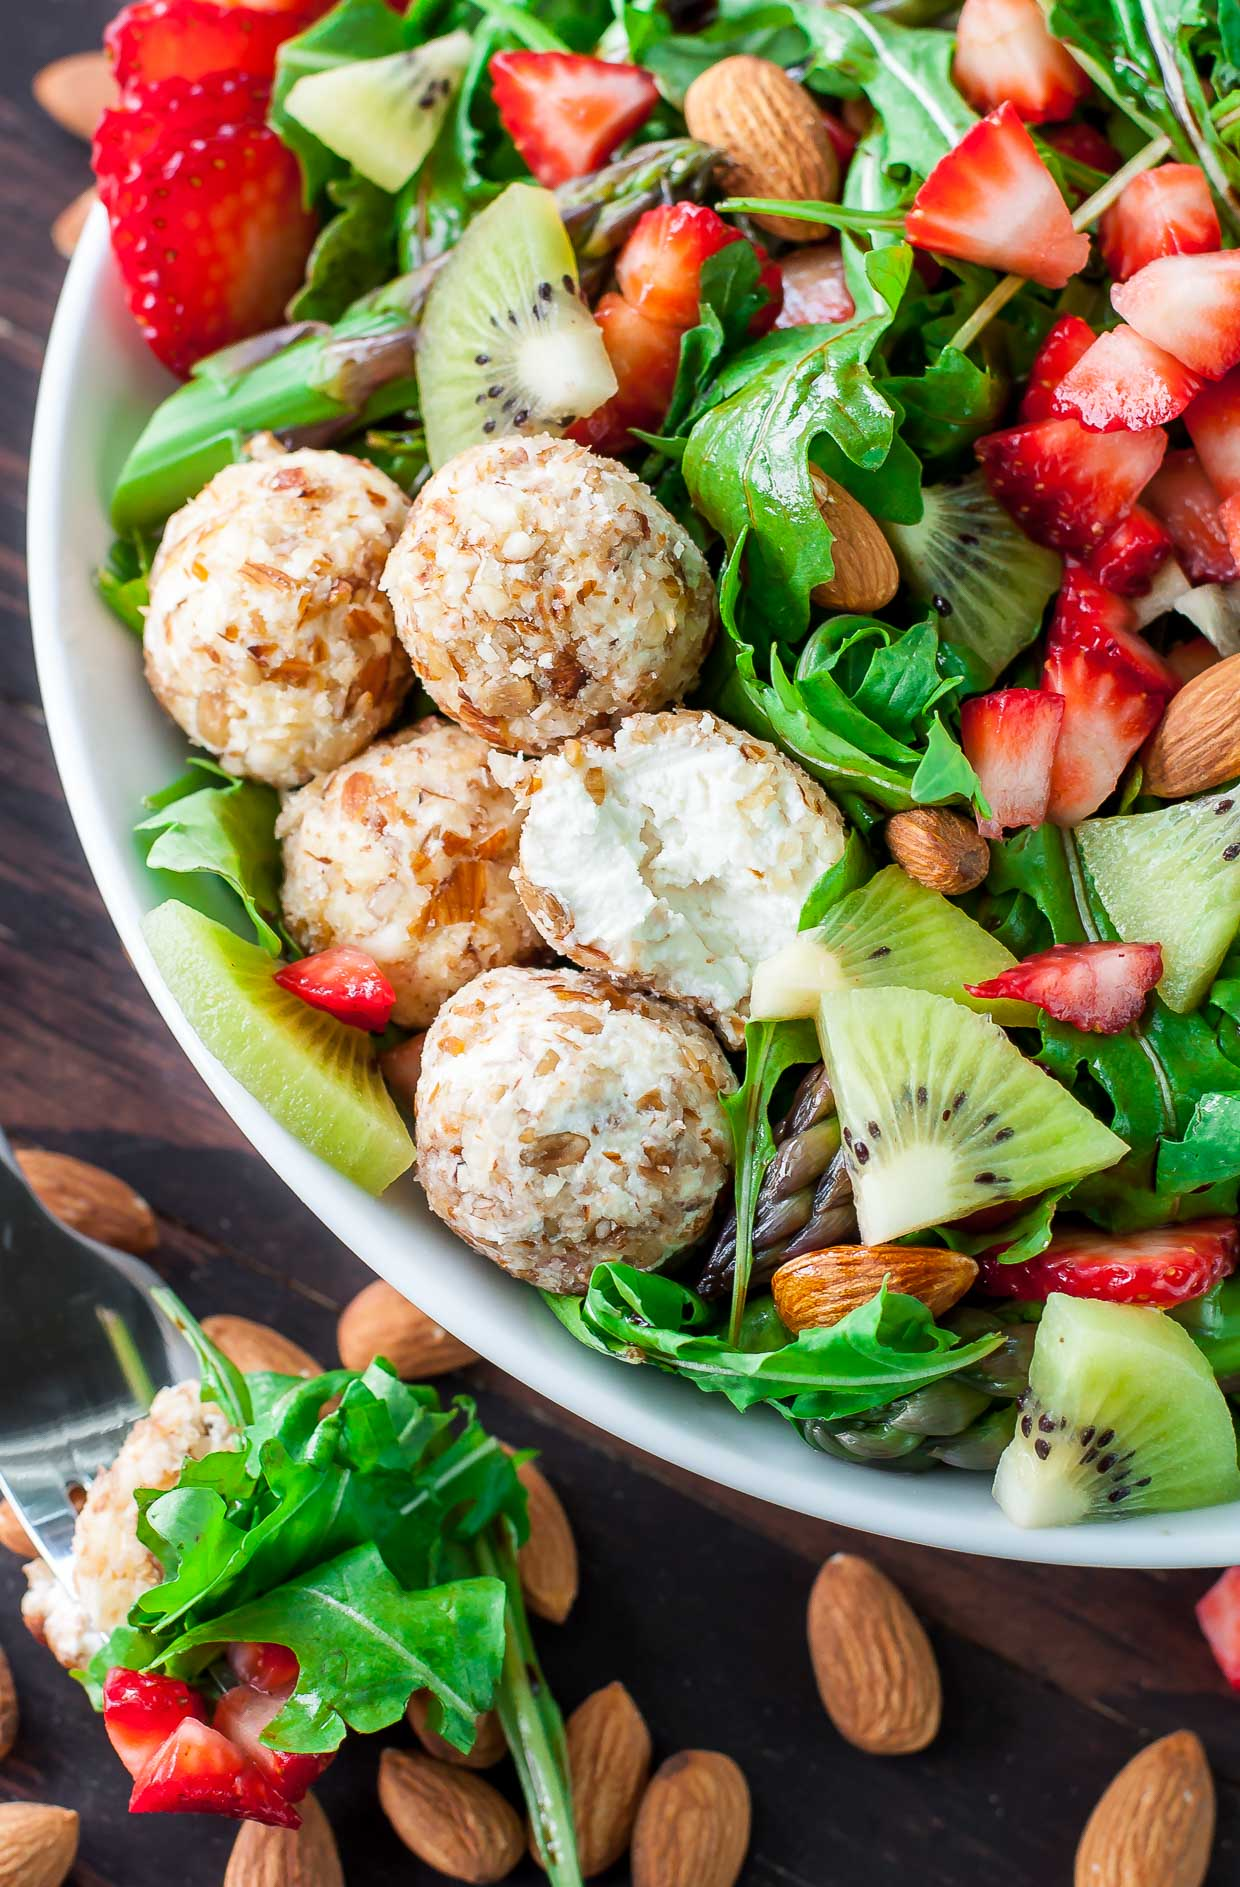 Just say no to boring salads! This sweet and savory Almond Crusted Goat Cheese Salad is flecked with strawberries and kiwi and topped with a fruity balsamic dressing.